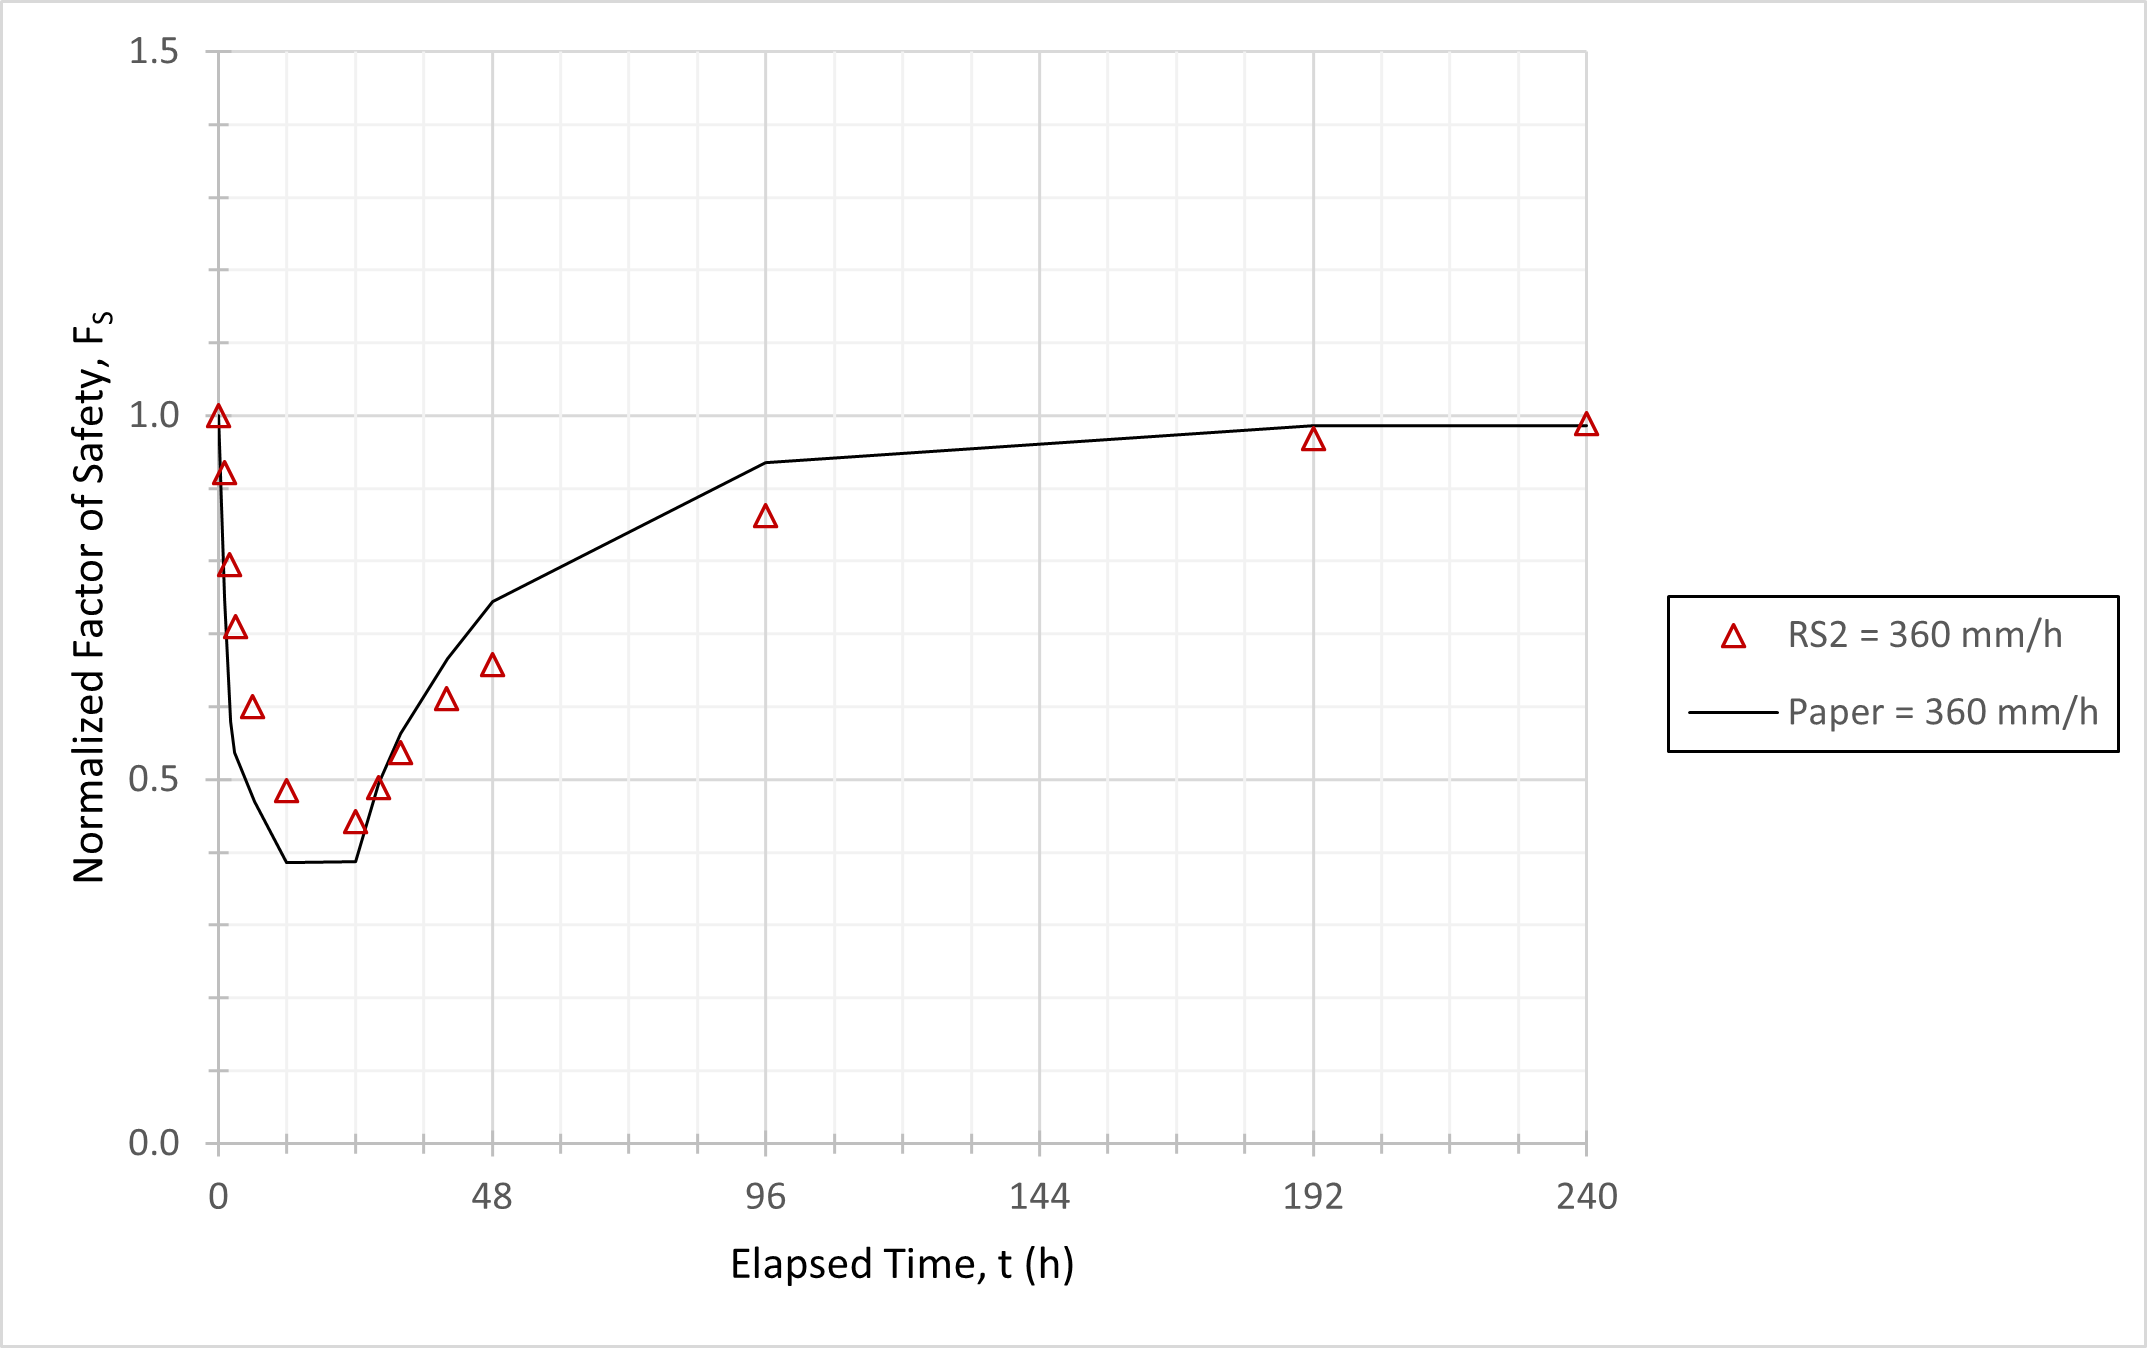 Figure 2: Variation of Normalized Factor of Safety with Time